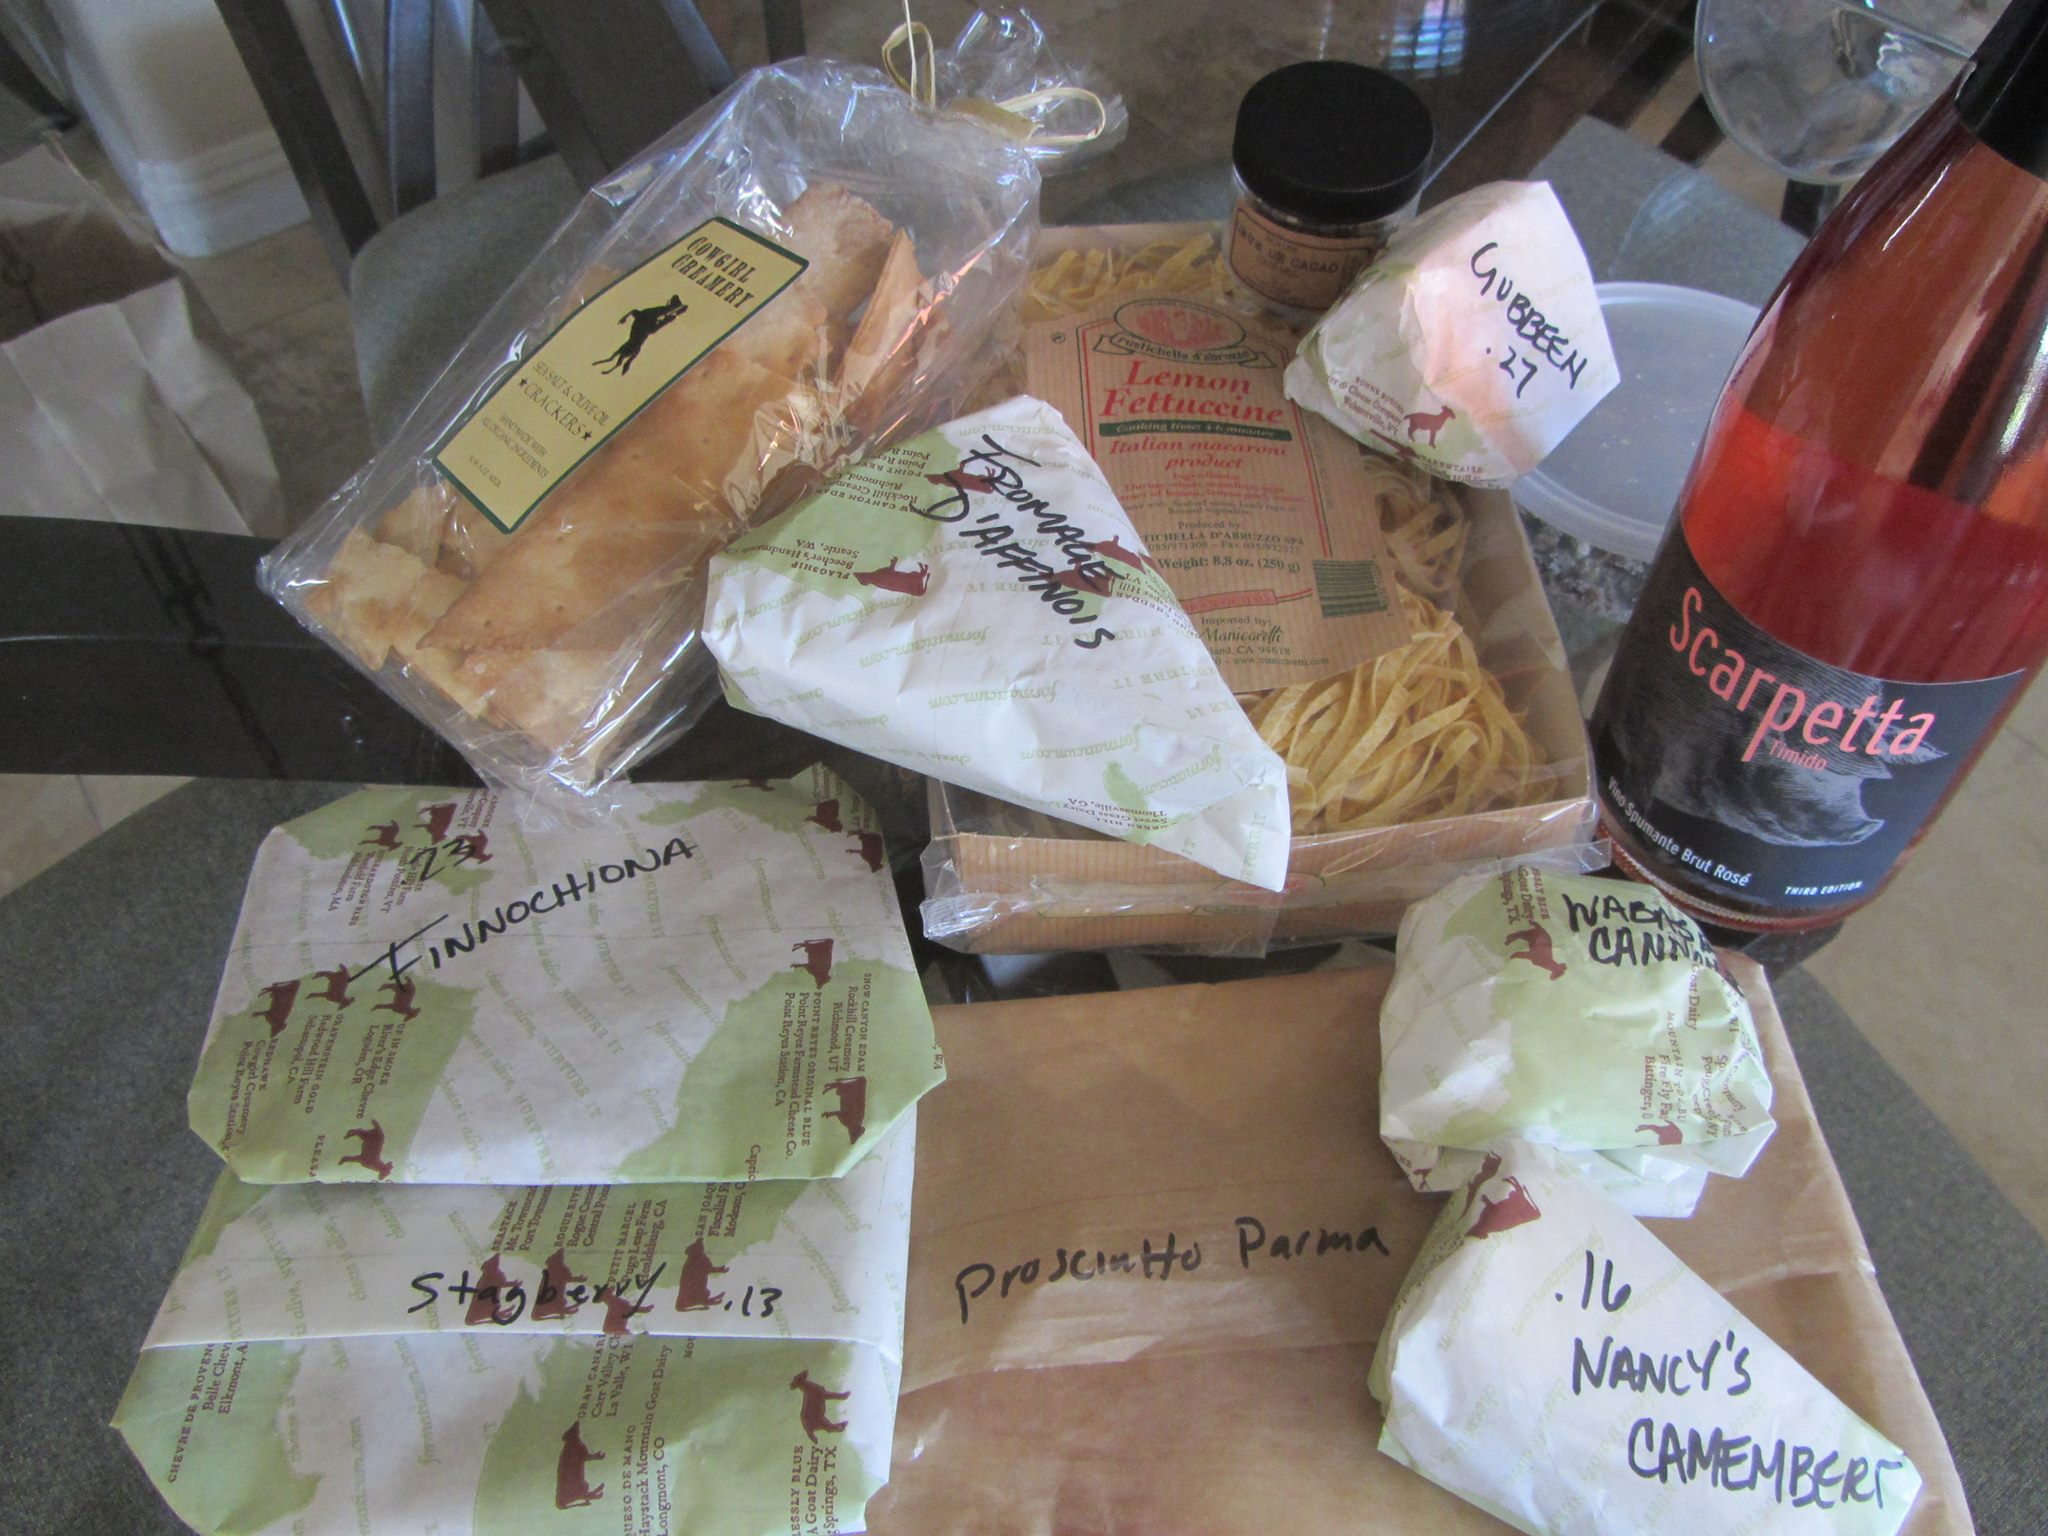 Fromager d'Affinois, Wabash Cannonball, Camembert, Gubbeen, Prosciutto di Parma, finocchiona, Stagberry elk and blueberry salame,  pasta, cocoa nibs, crackers, Caravalgio salted capers